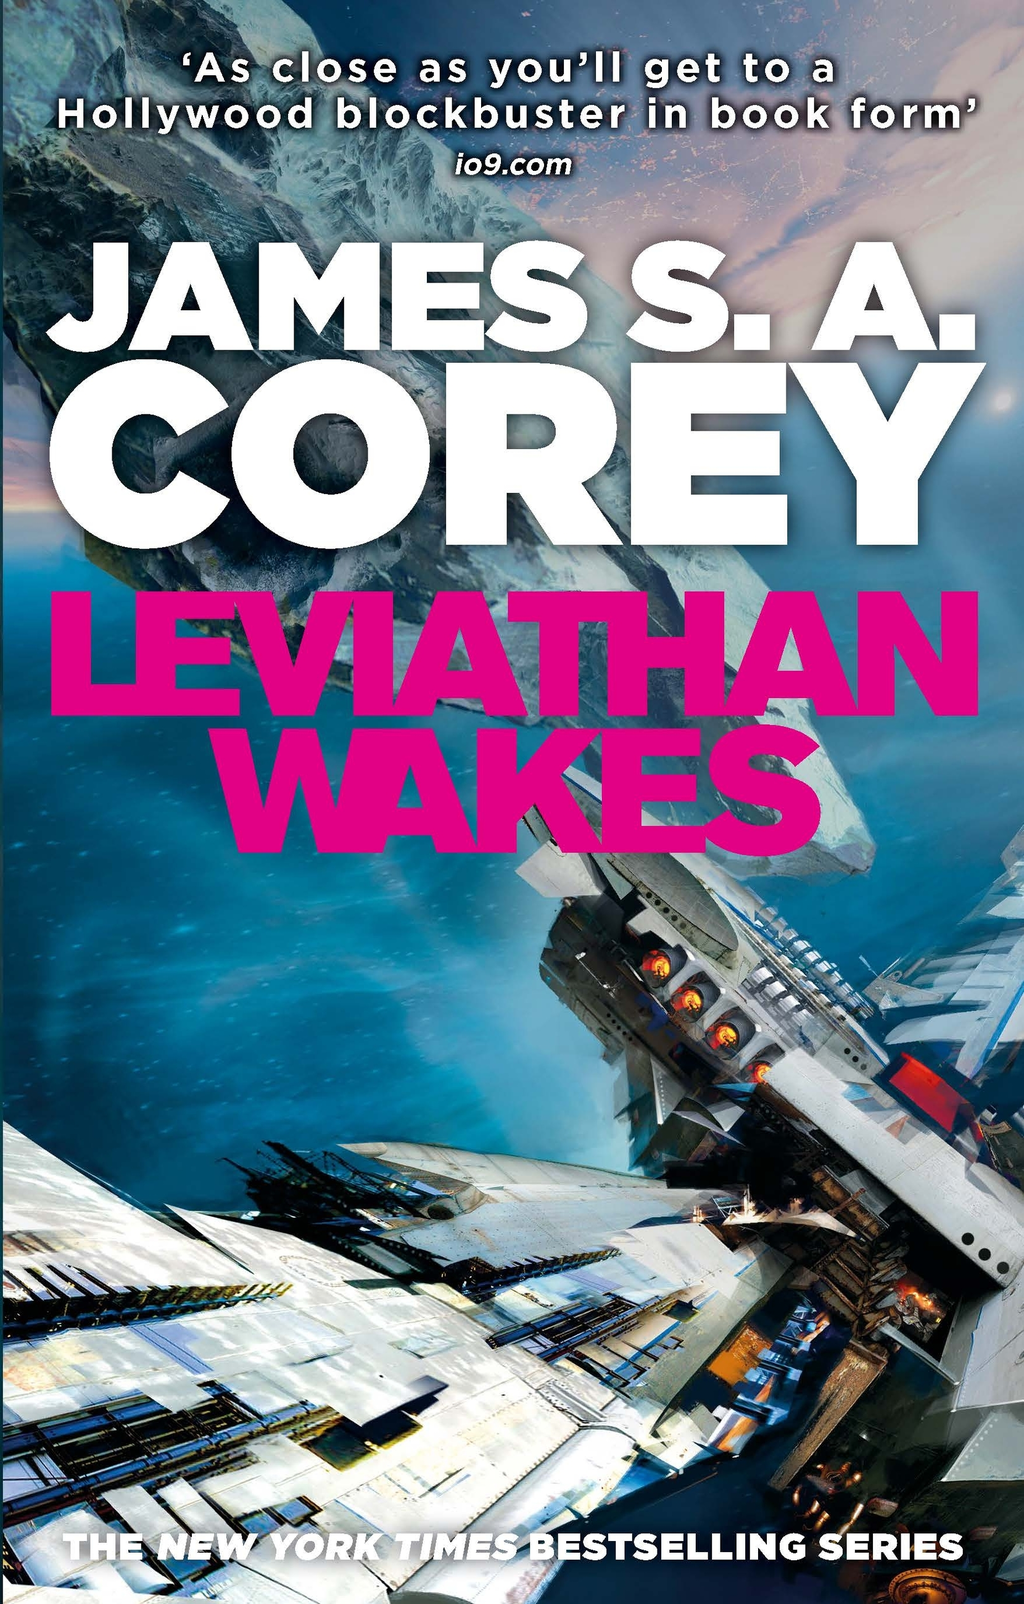 Leviathan Wakes Book One of the Expanse series